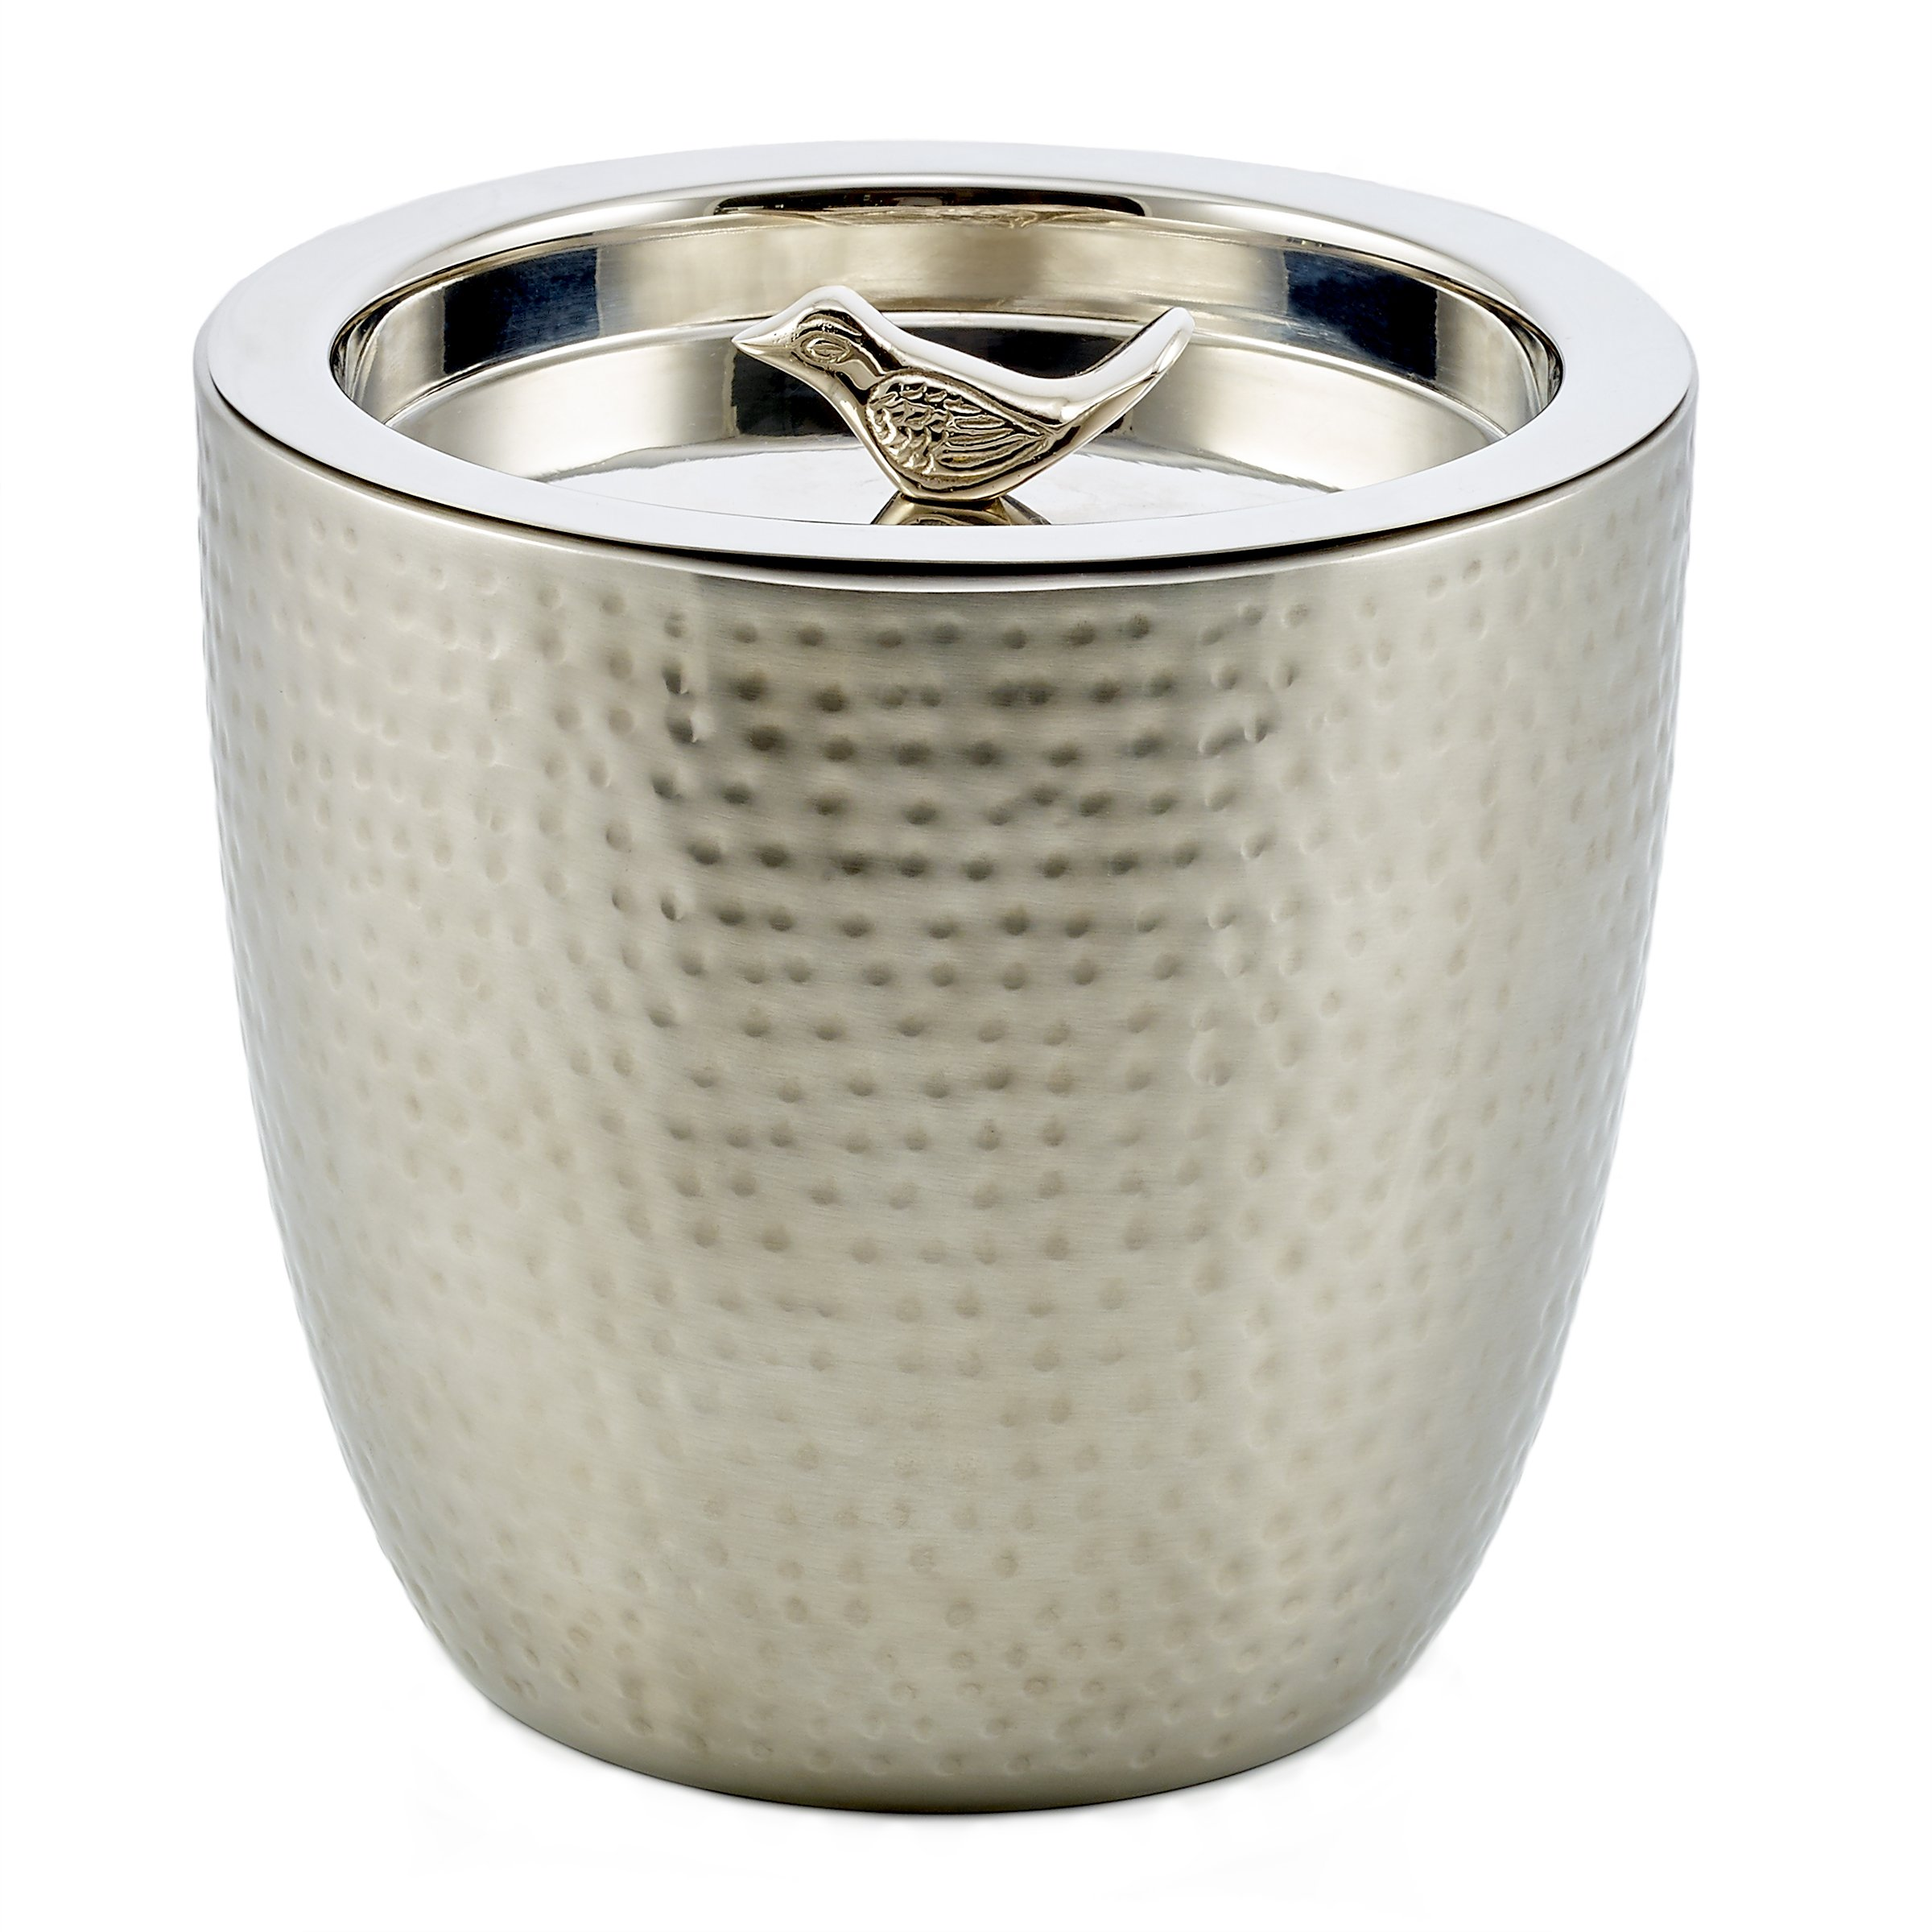 Old Dutch ''Churp'' Hammered Double Walled Stainless Steel Ice Bucket with Bird Knob, 11/2 quart